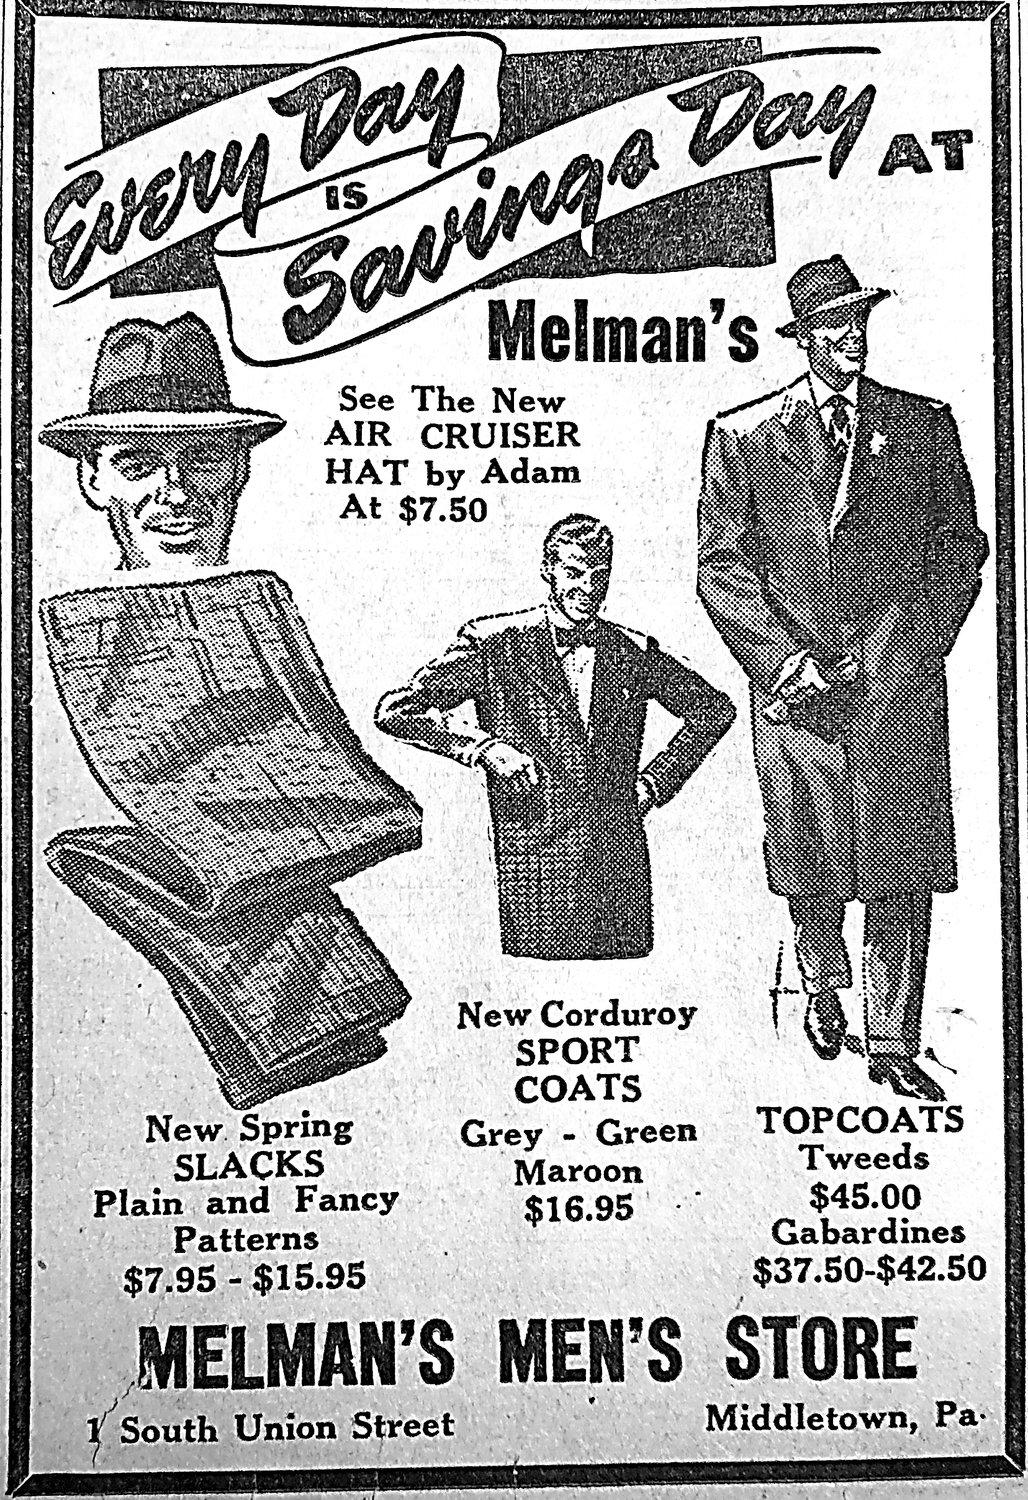 Editor's note: There were few photos in newspapers during this era, so we present an ad from a local store showing what the well-dressed  man was wearing in 1950 ... and the prices.